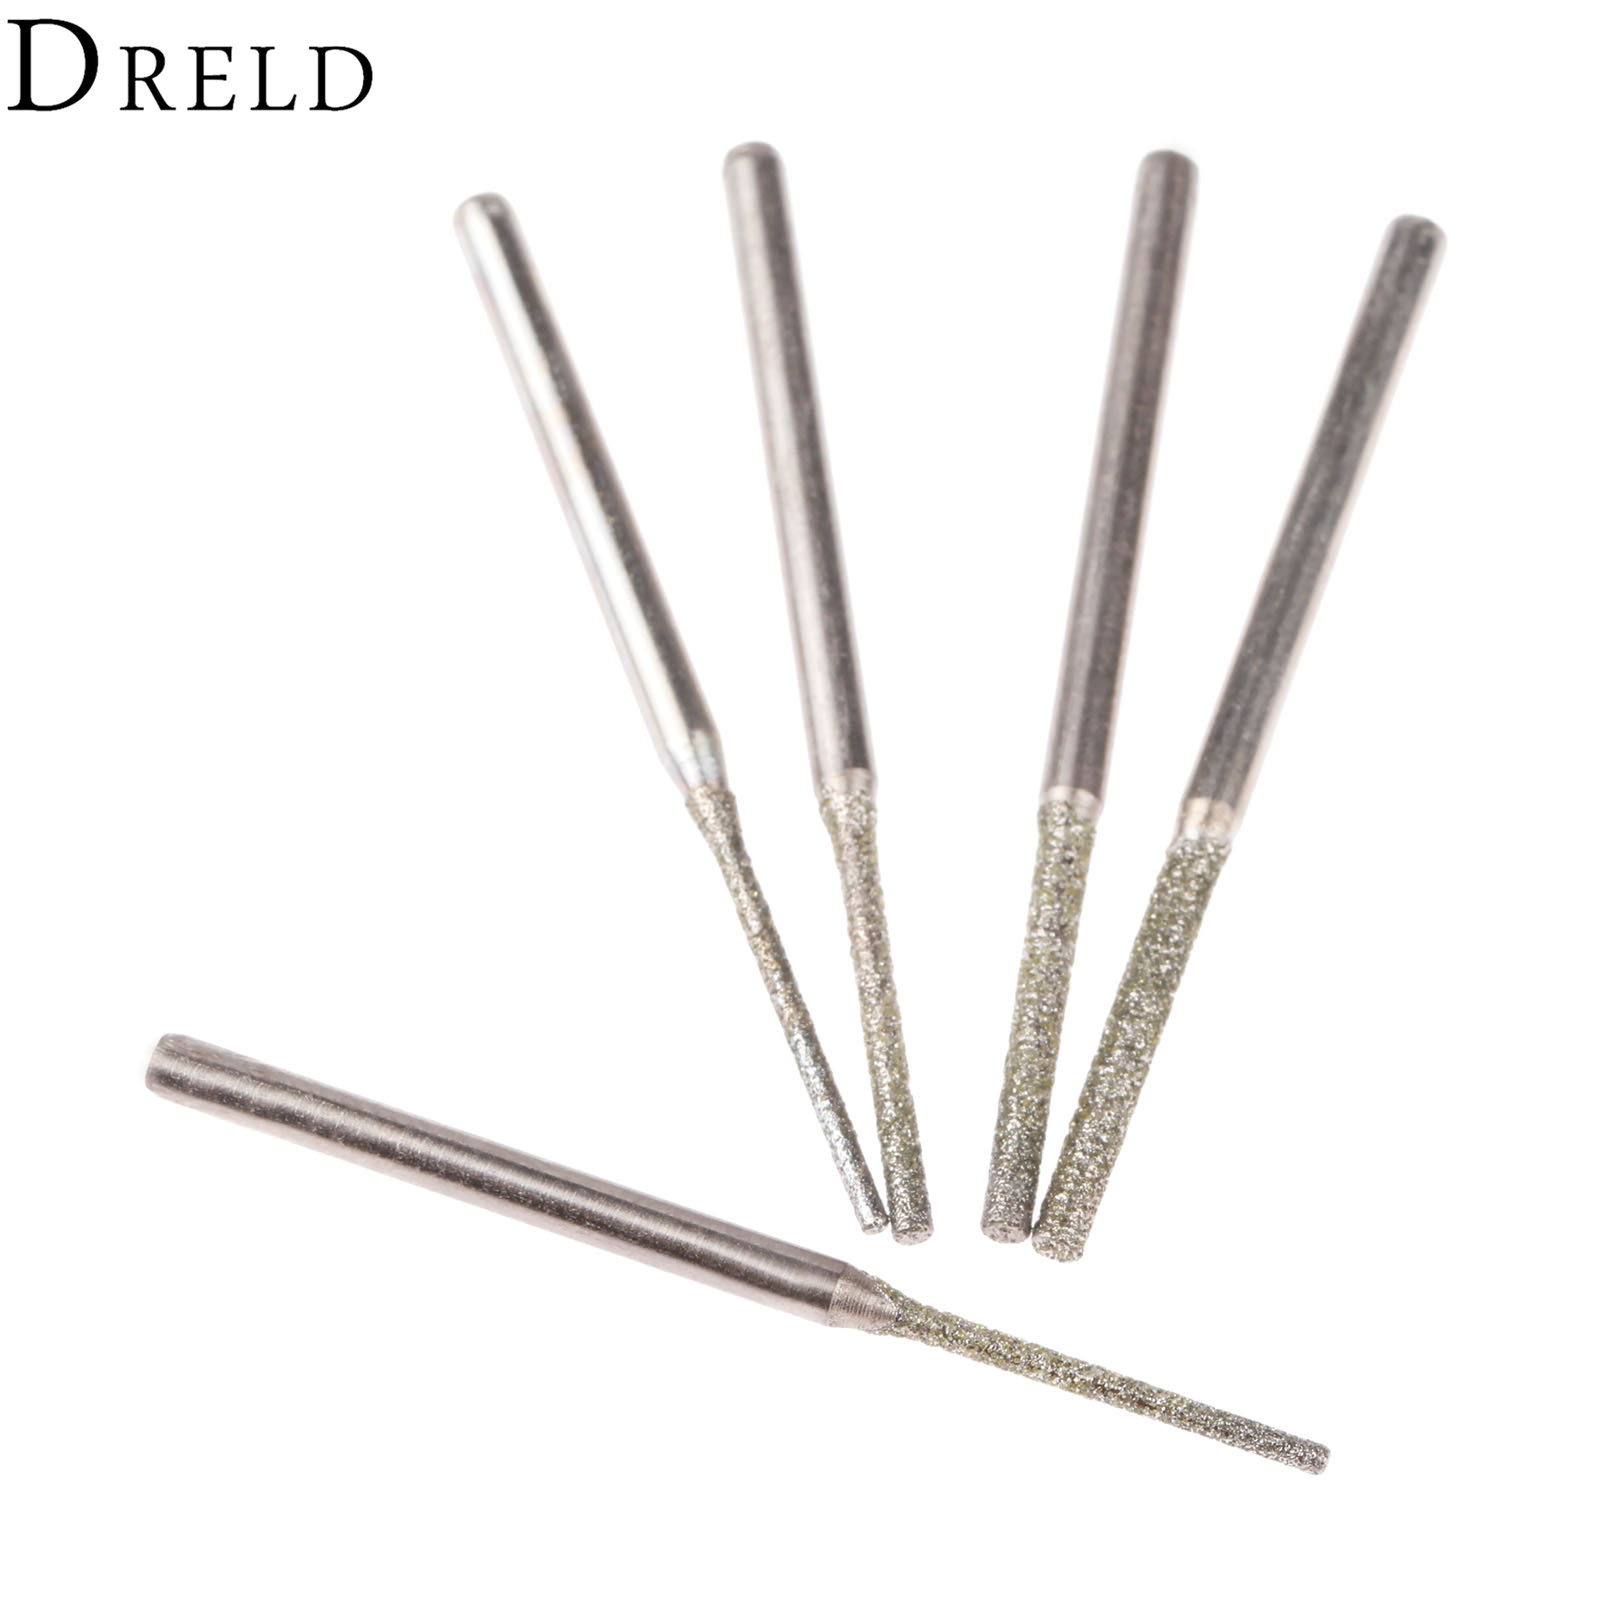 DRELD 5Pcs 2.35mm Shank Diamond Grinding Head Grinding Emery Punching Pin For Stone Jade Carving Rotary Tools Dremel Accesories